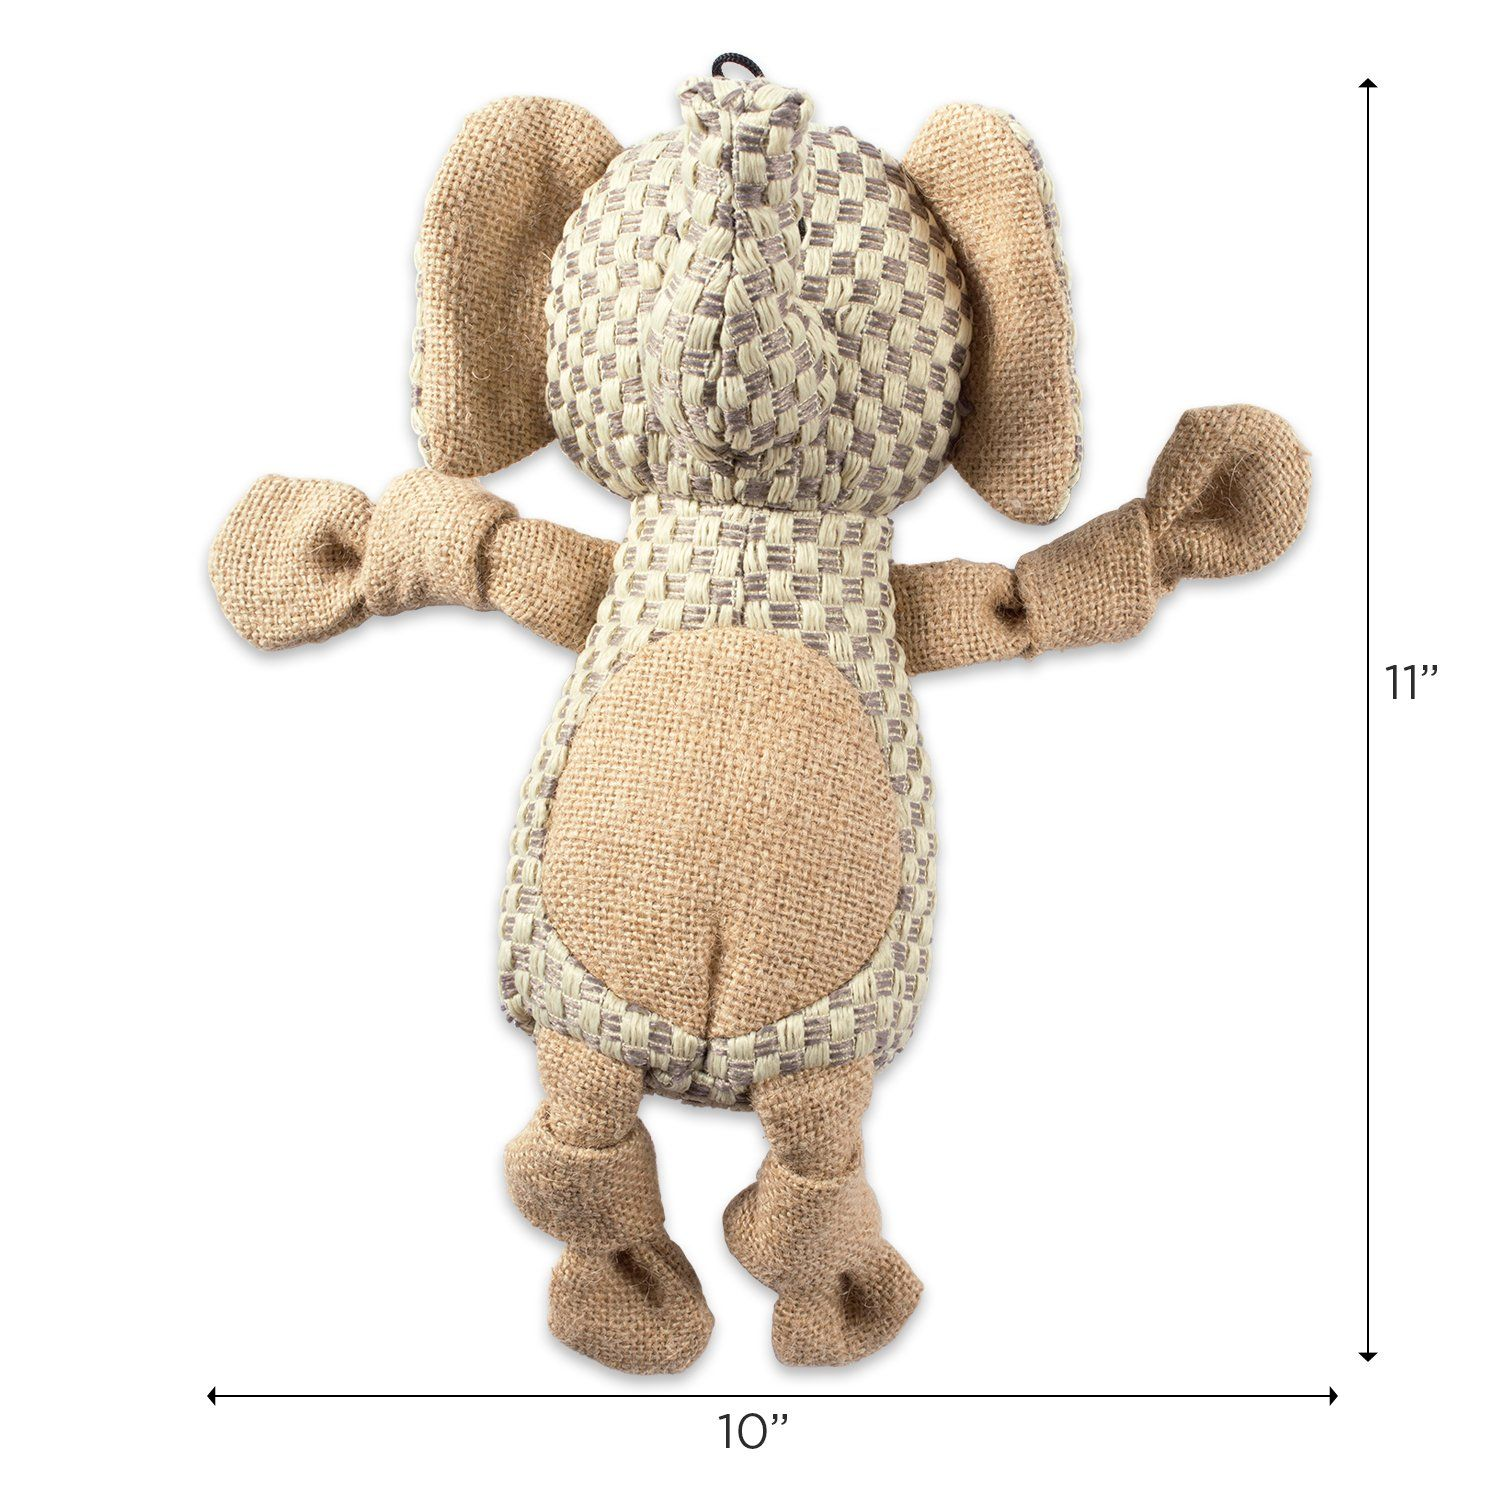 Dii Bone Dry Burlap Body Jungle Friends Squeaking Pet Toy